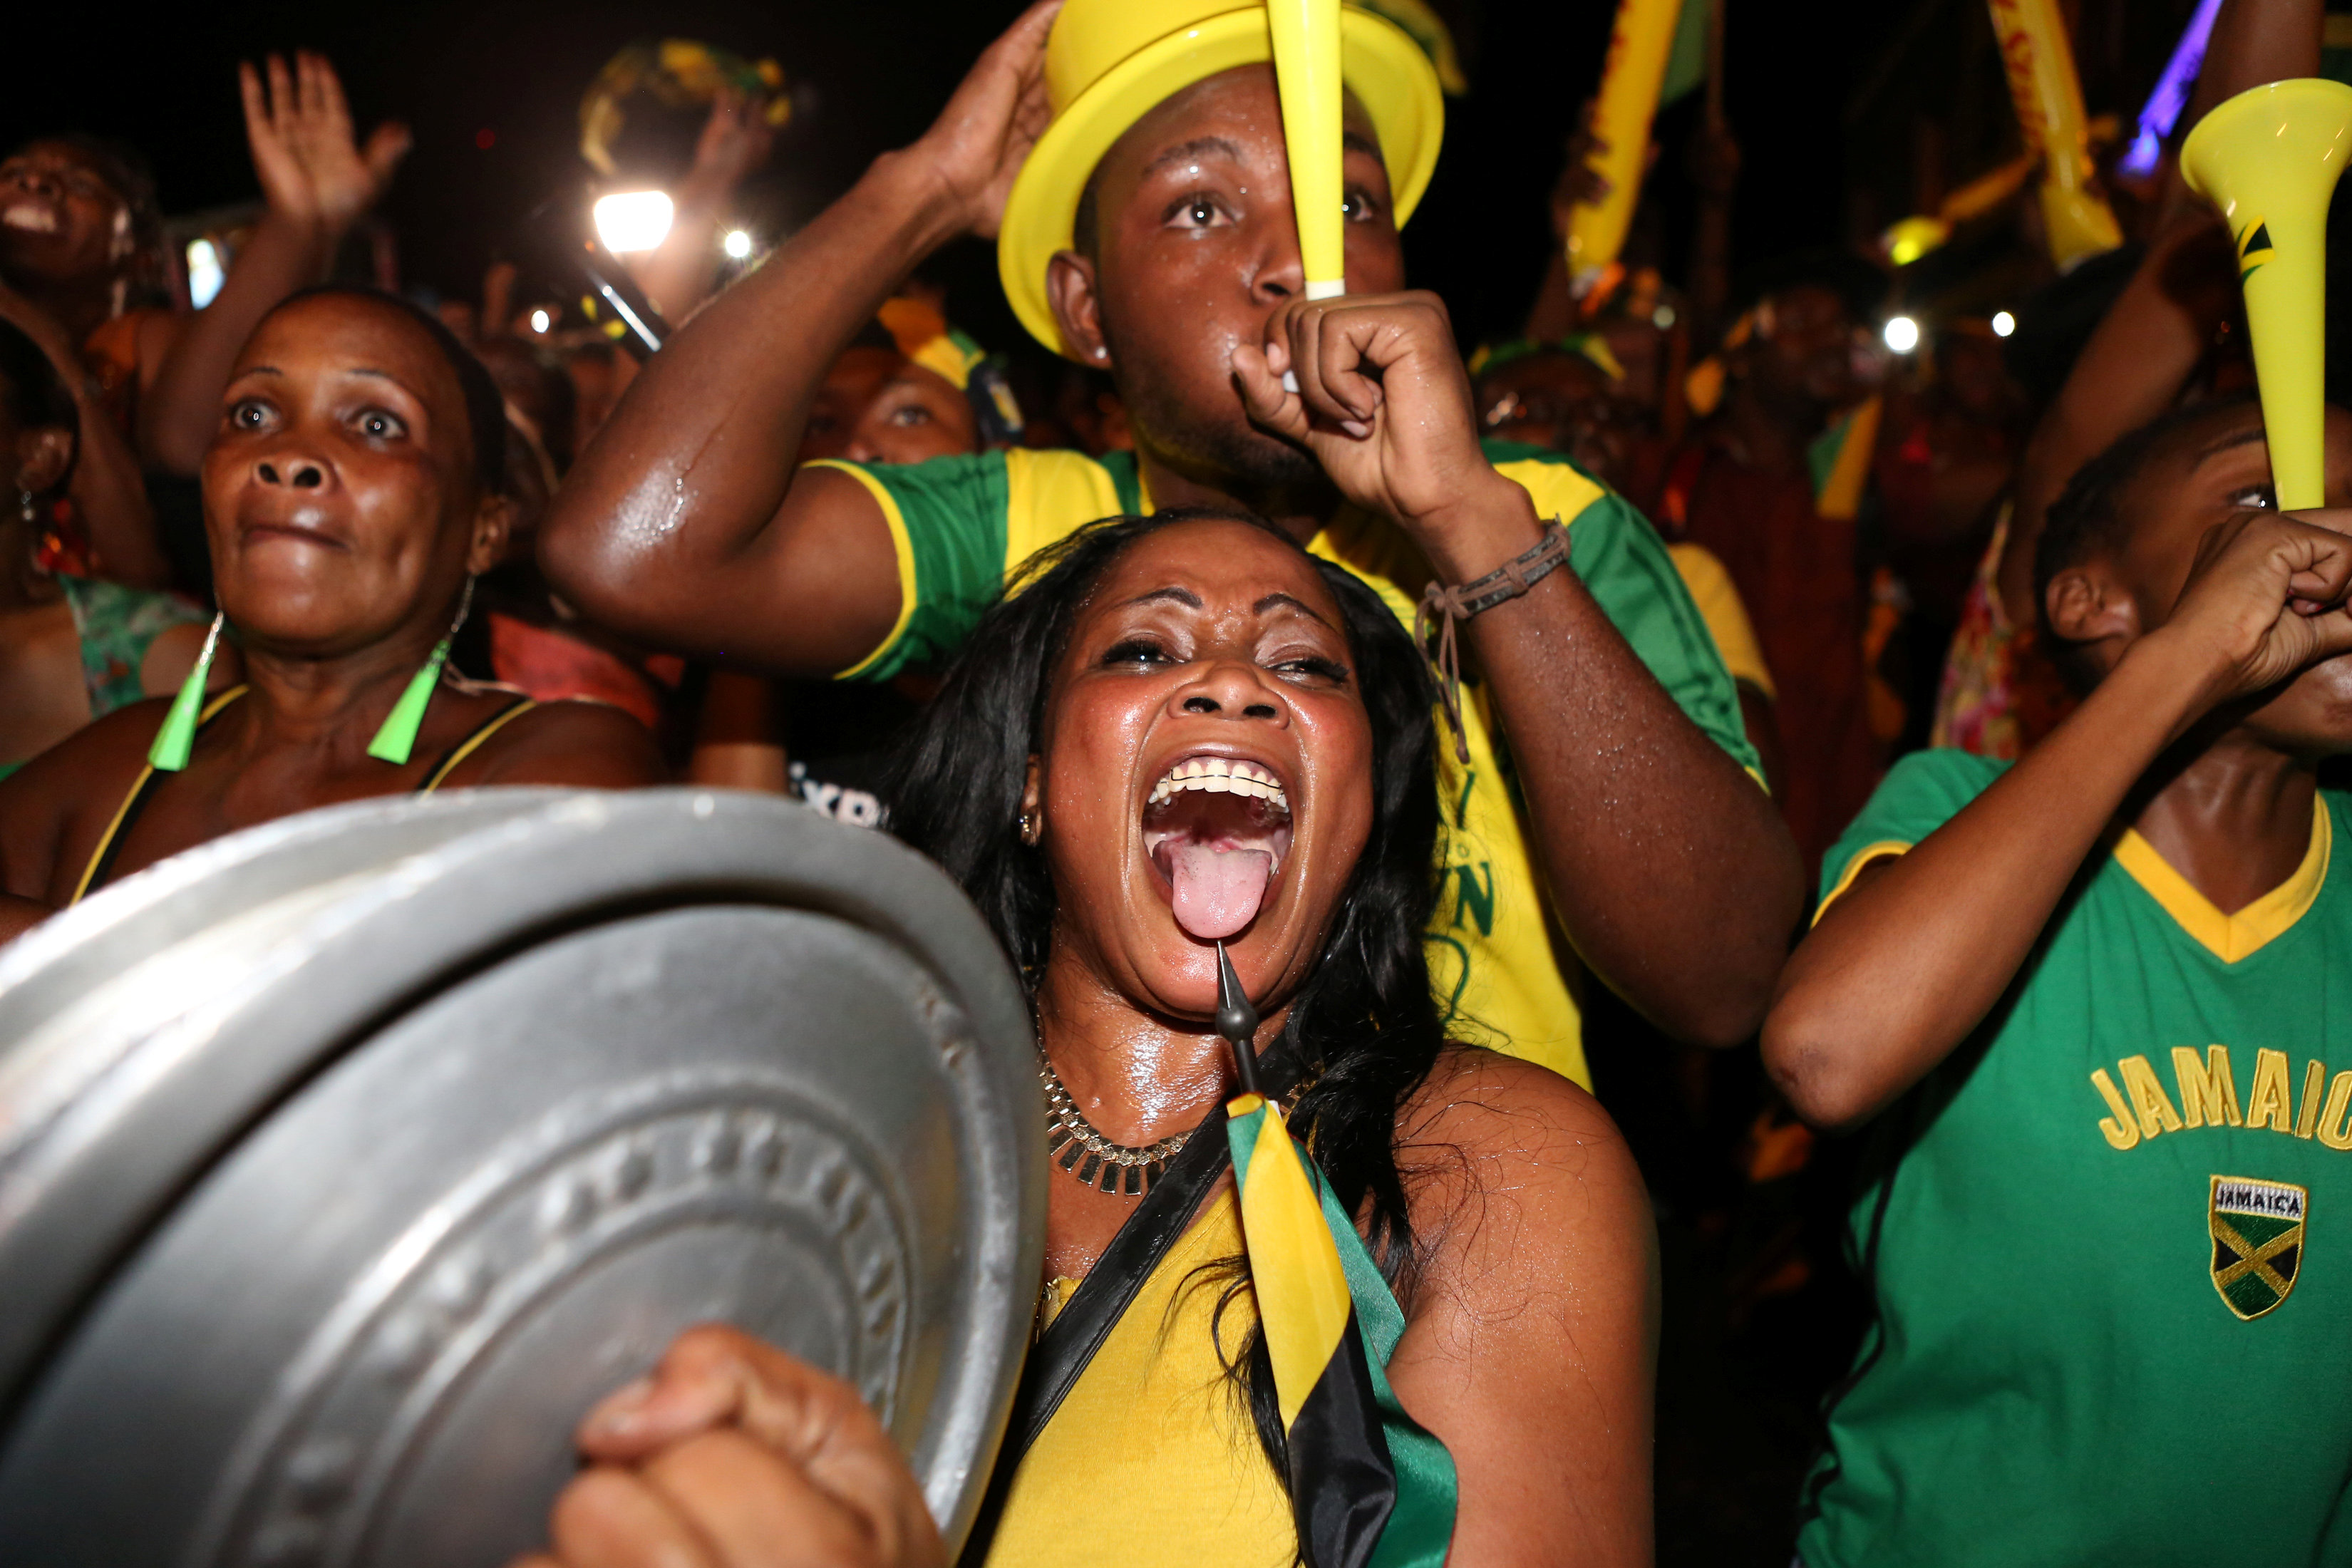 Fans cheer while watching a broadcast of Jamaica's Usain Bolt winning the men's 100 meters final and becoming the first man to win three successive Olympic titles on the track, in Kingston, Jamaica, August 14, 2016.